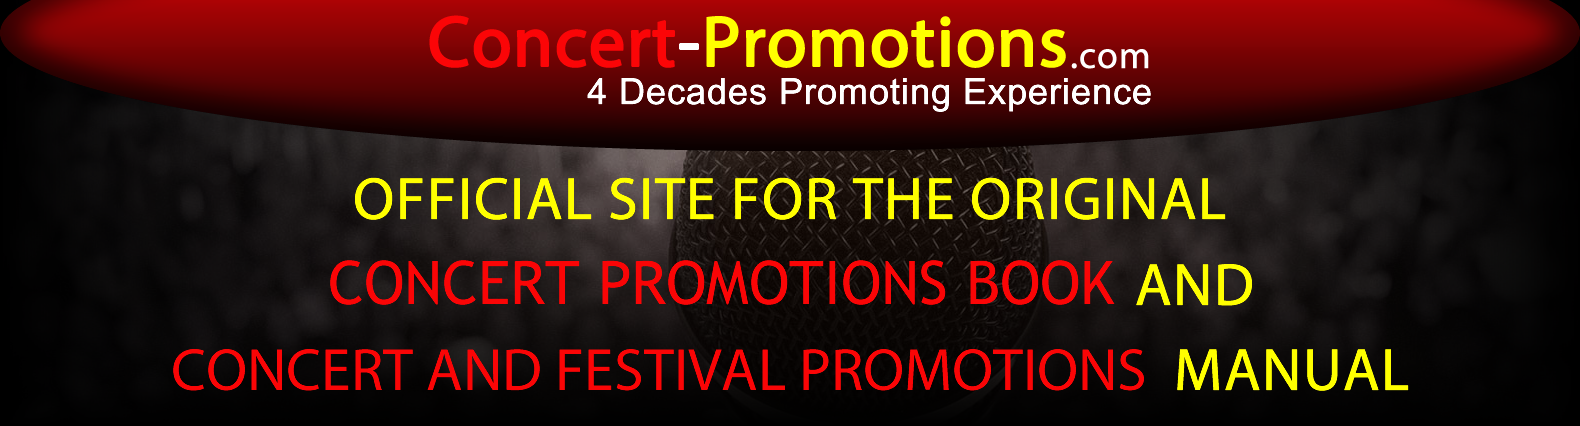 concert promotions banner